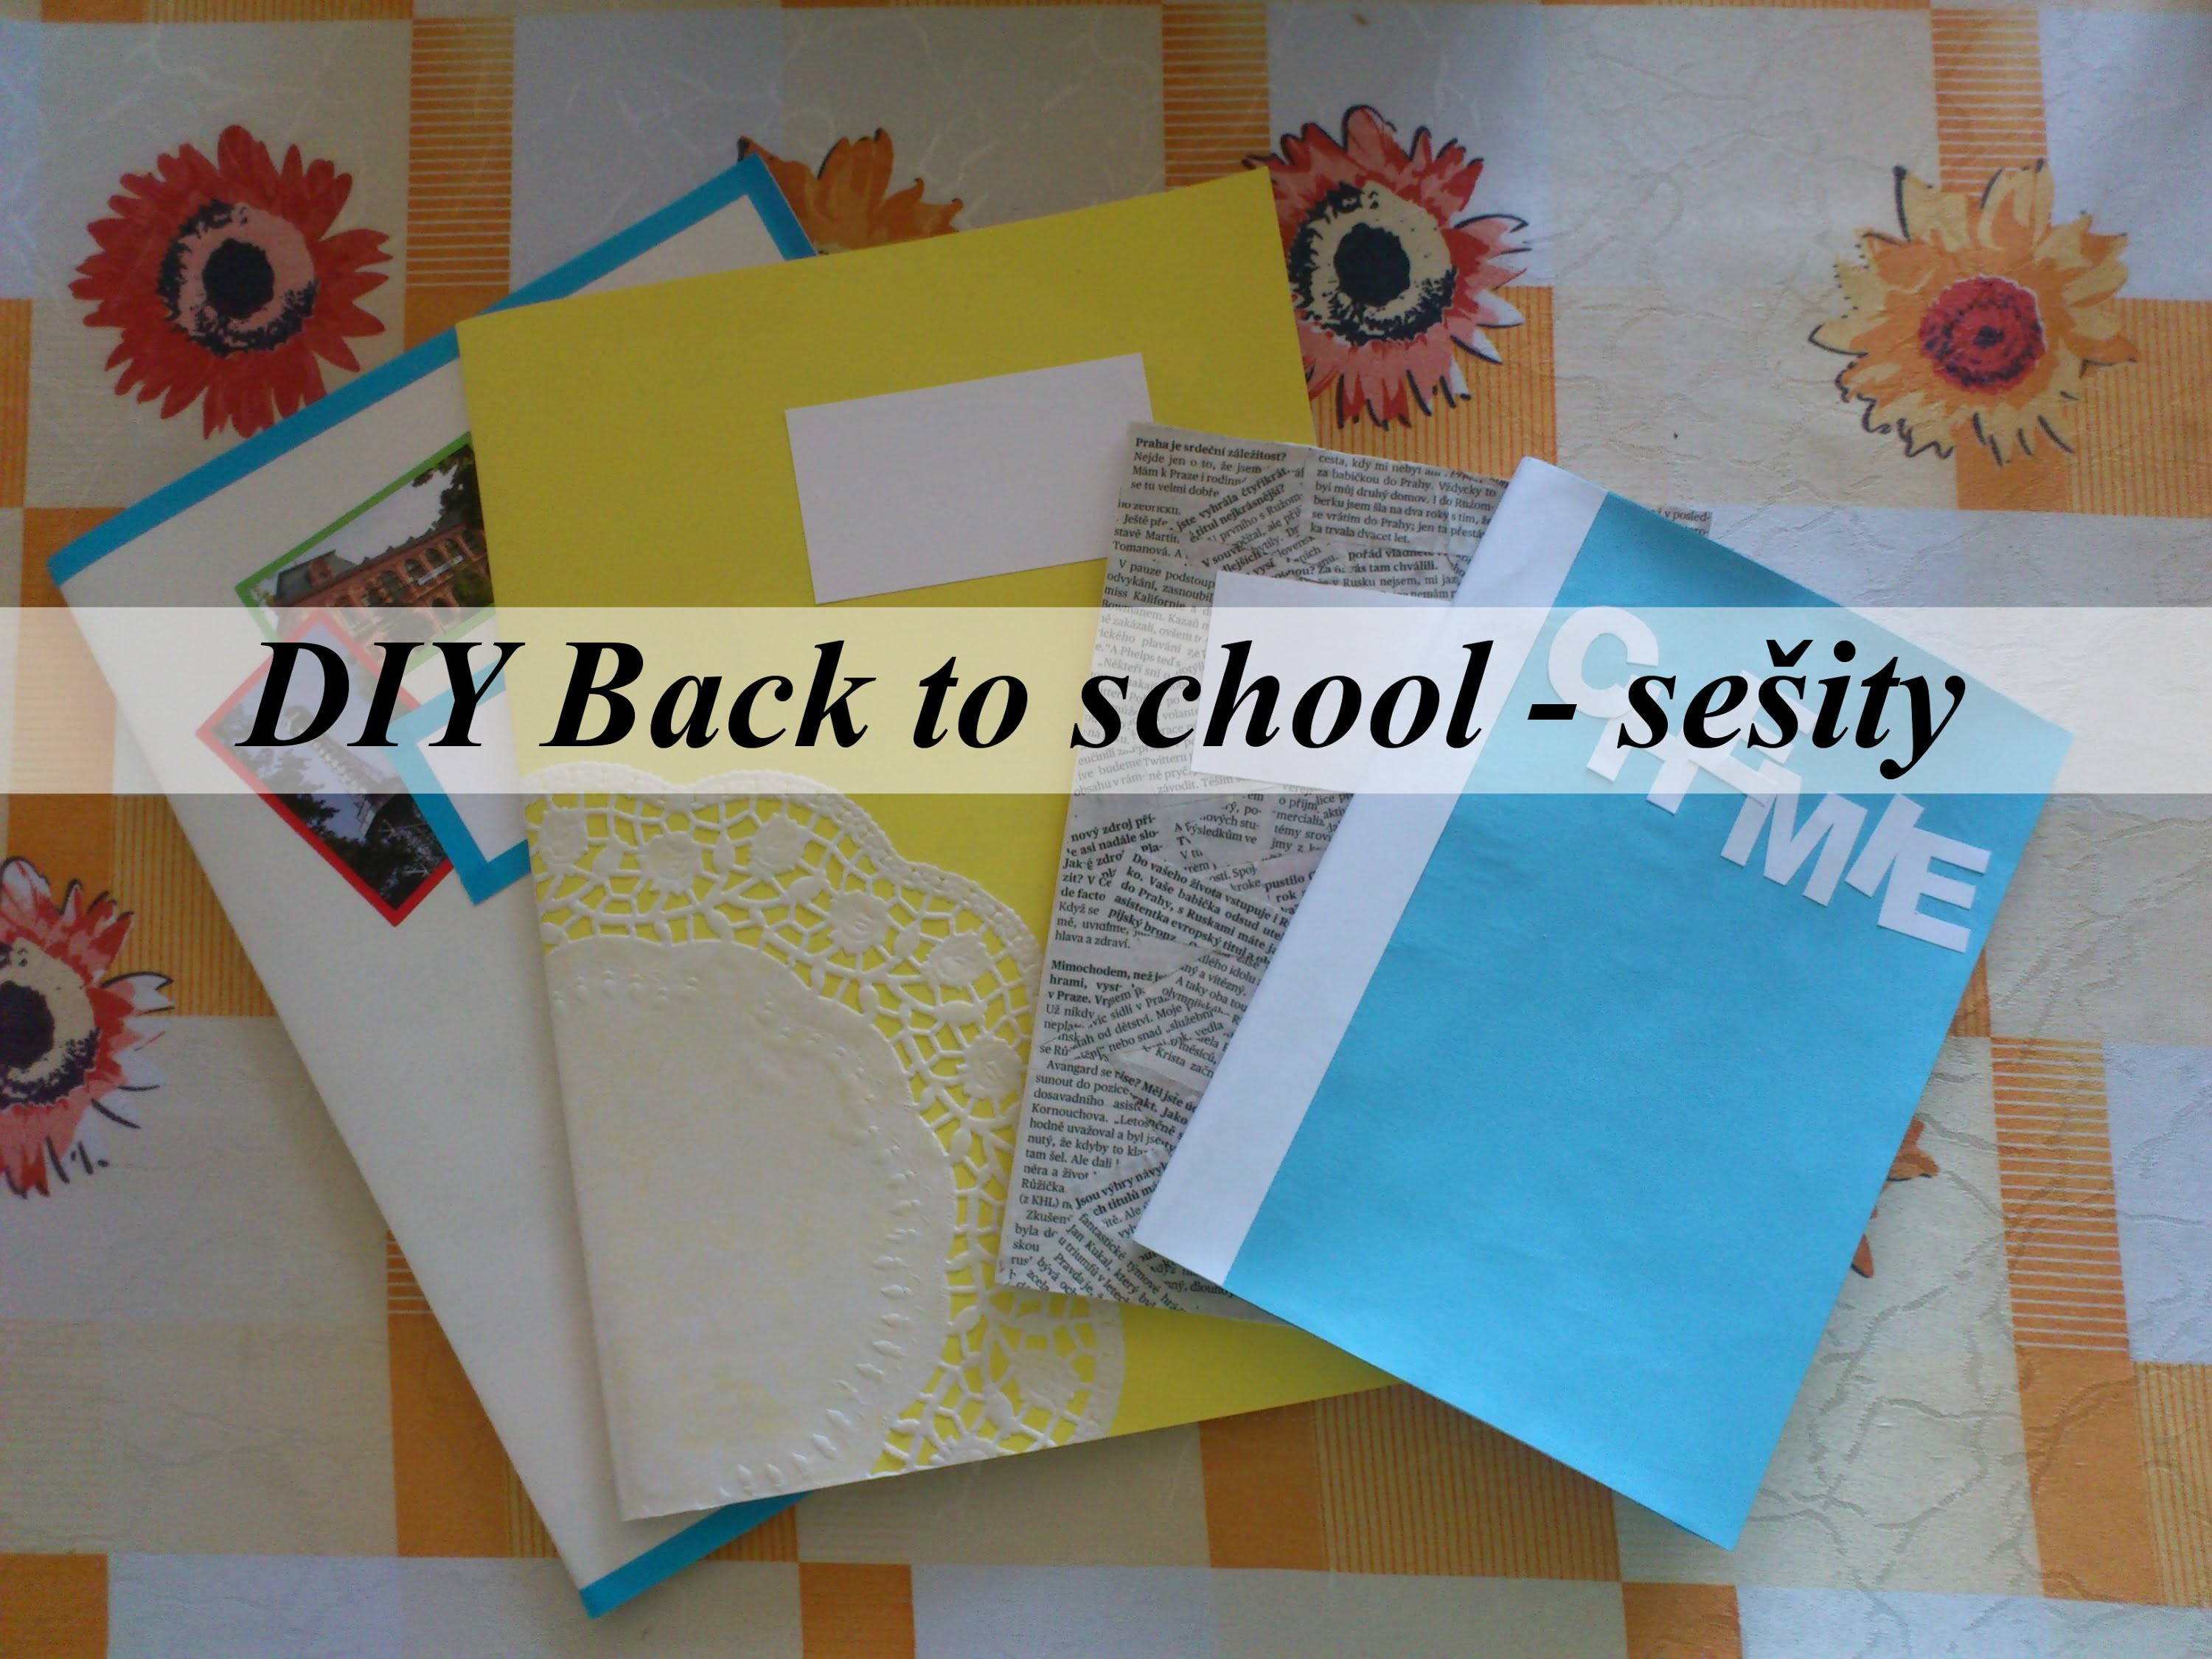 DIY Back to school 2015 - sešity.notebooks